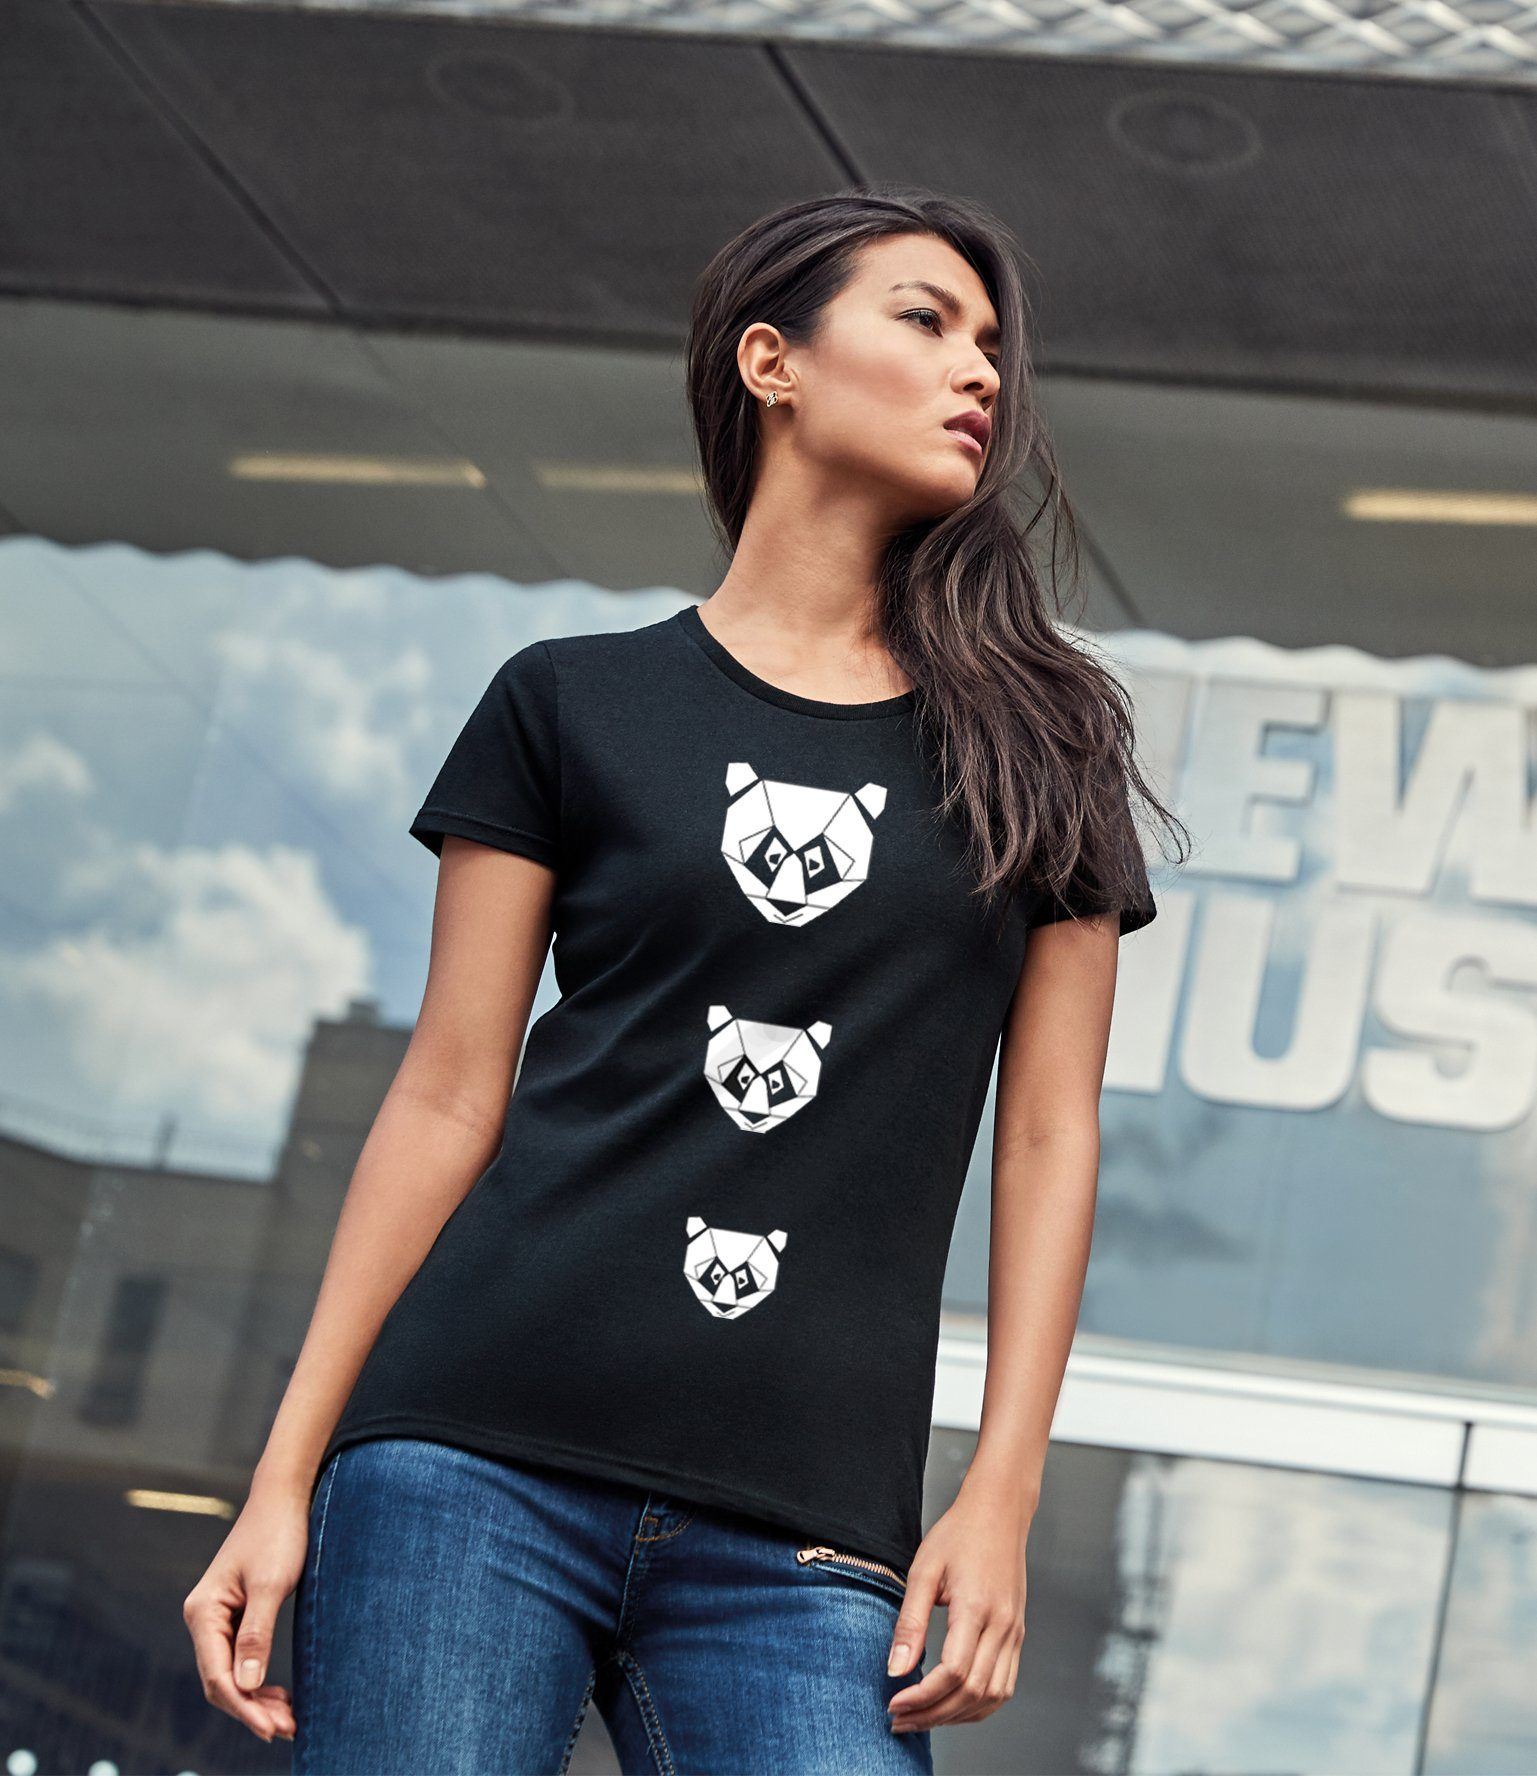 Women Top - Geometric Panda T-shirt